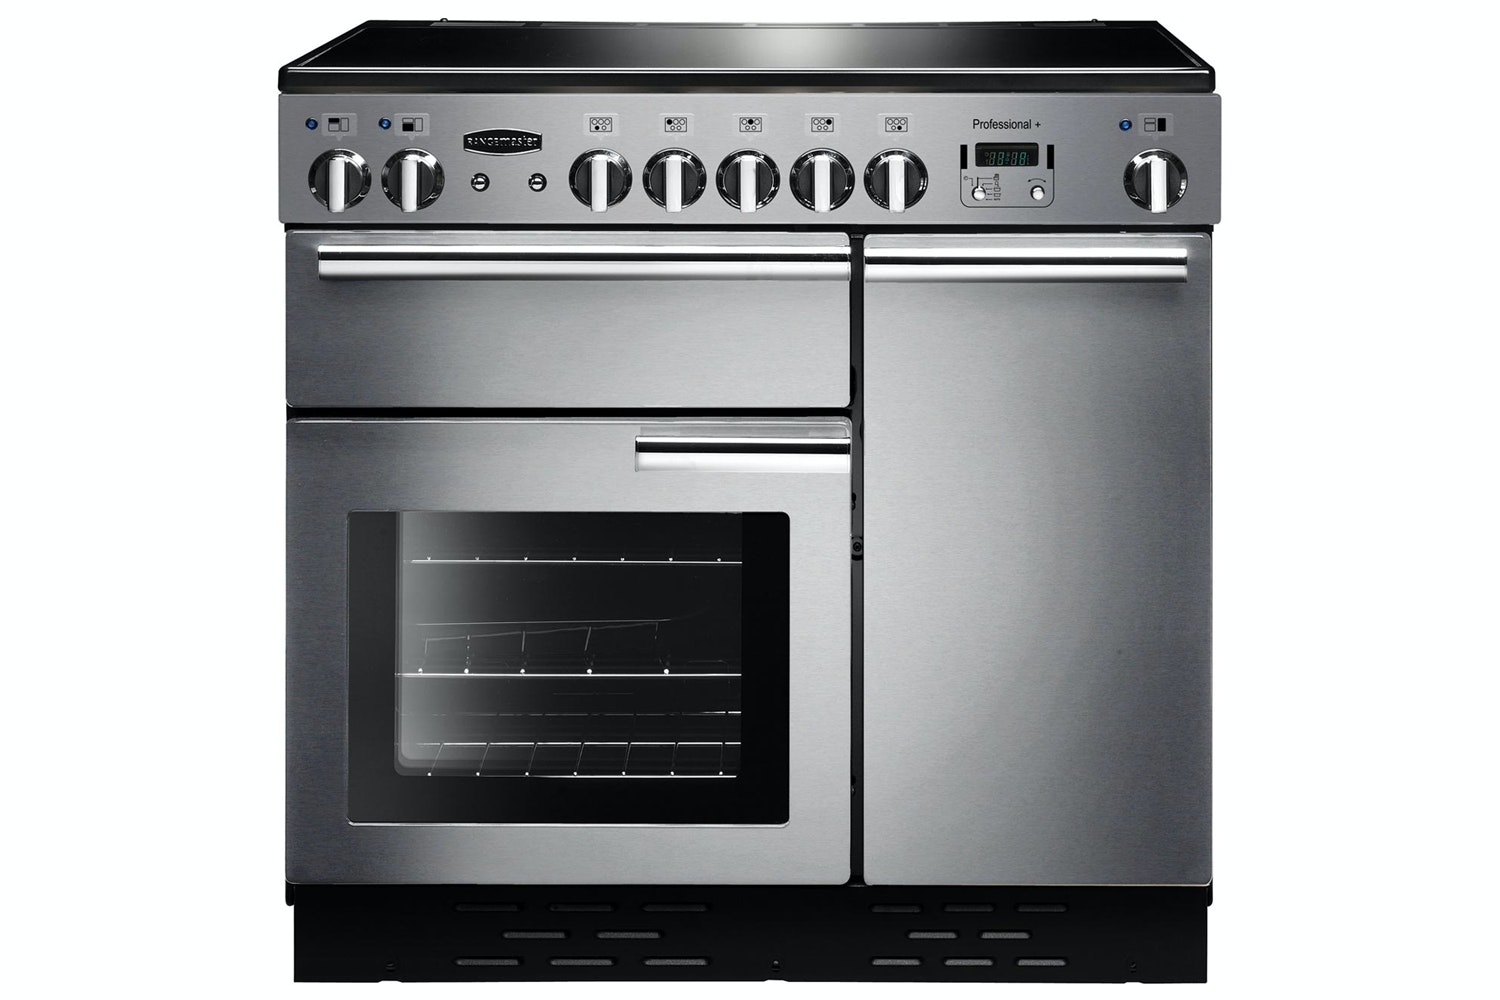 Rangemaster Professional Plus 90cm Electric Range Cooker | PROP90EISS/C | Stainless Steel